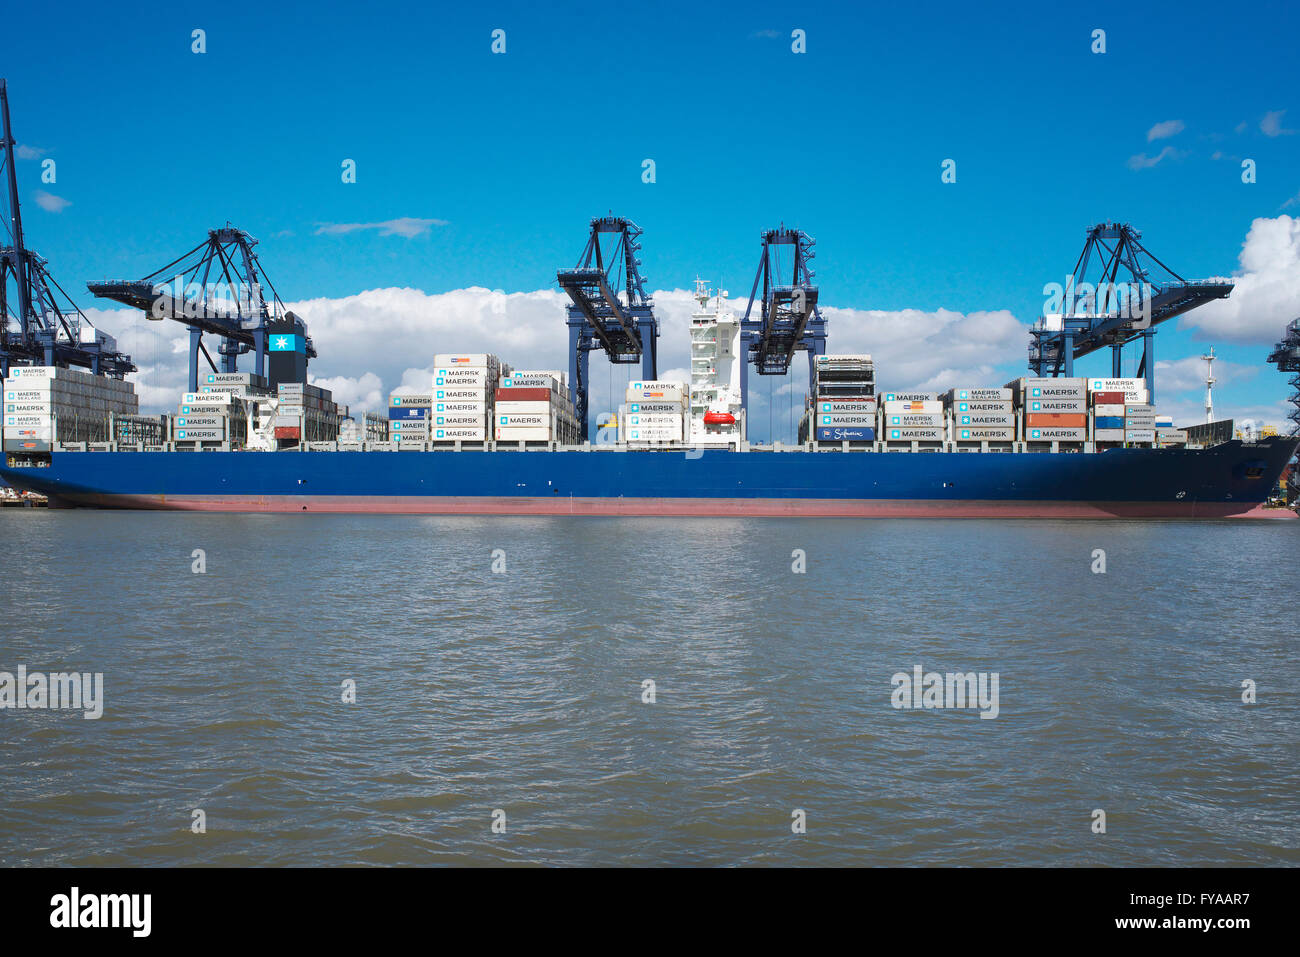 View from the North Sea of the Port of Felixstowe in Suffolk and a container ship being loaded from the shore - Stock Image